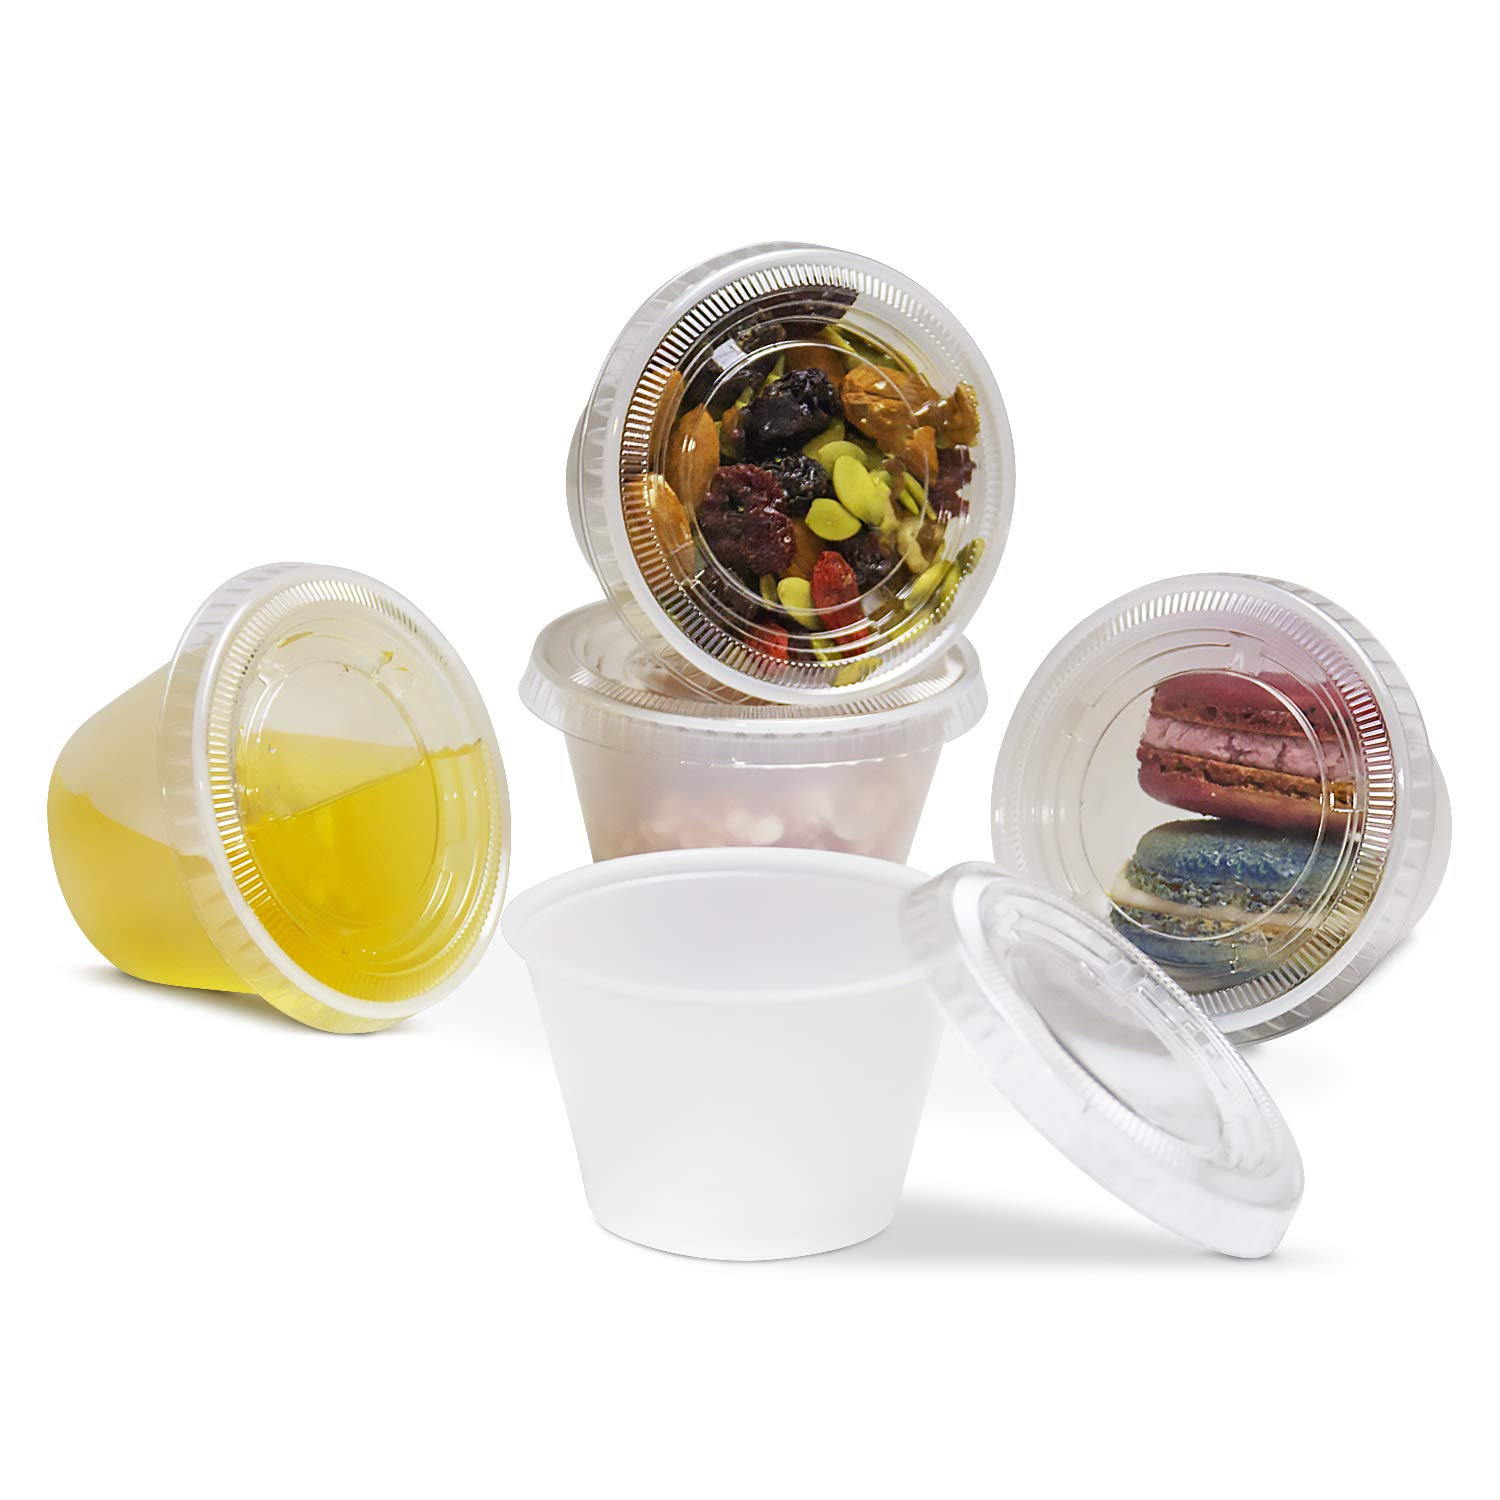 [250 Pack] 4 oz Plastic Containers with Lids - Clear Jello Shot Cups, Mini Portion Cup BPA Free for Sauce, Condiments, Souffle, Salad Dressing, Sushi, Medicine or Slime, Disposable Reusable Packaging